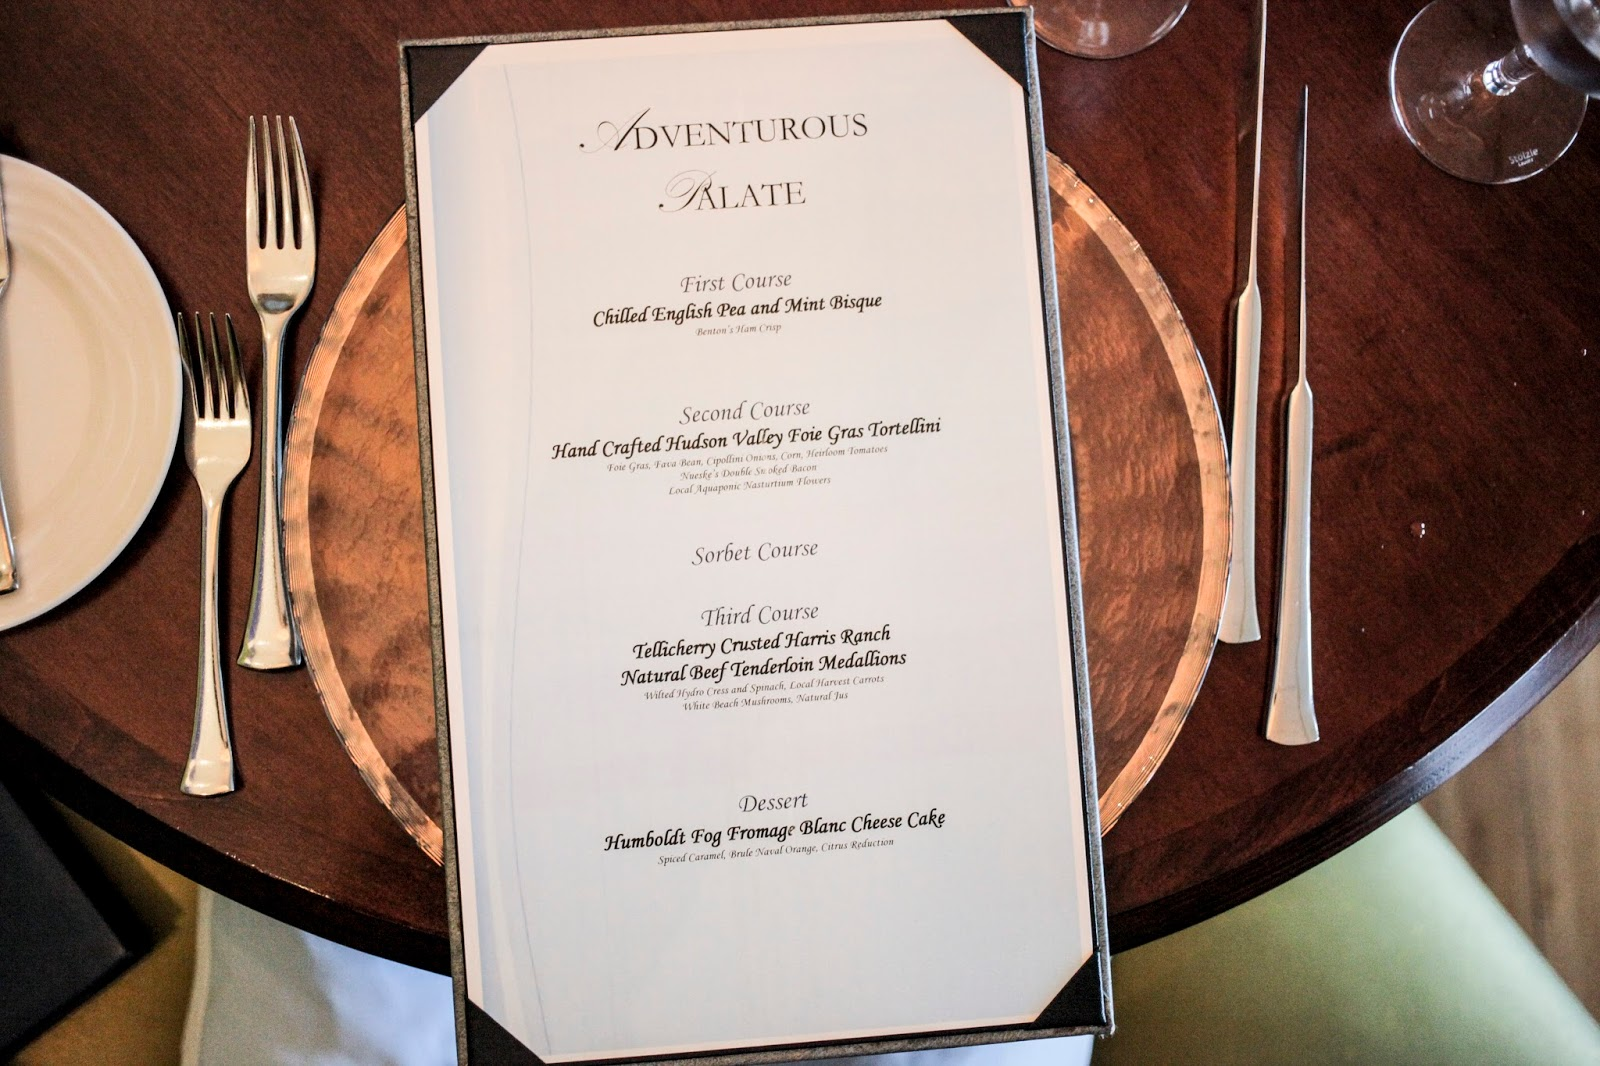 The Adventurous Palate menu example from Azurea at One Ocean Resort and Spa